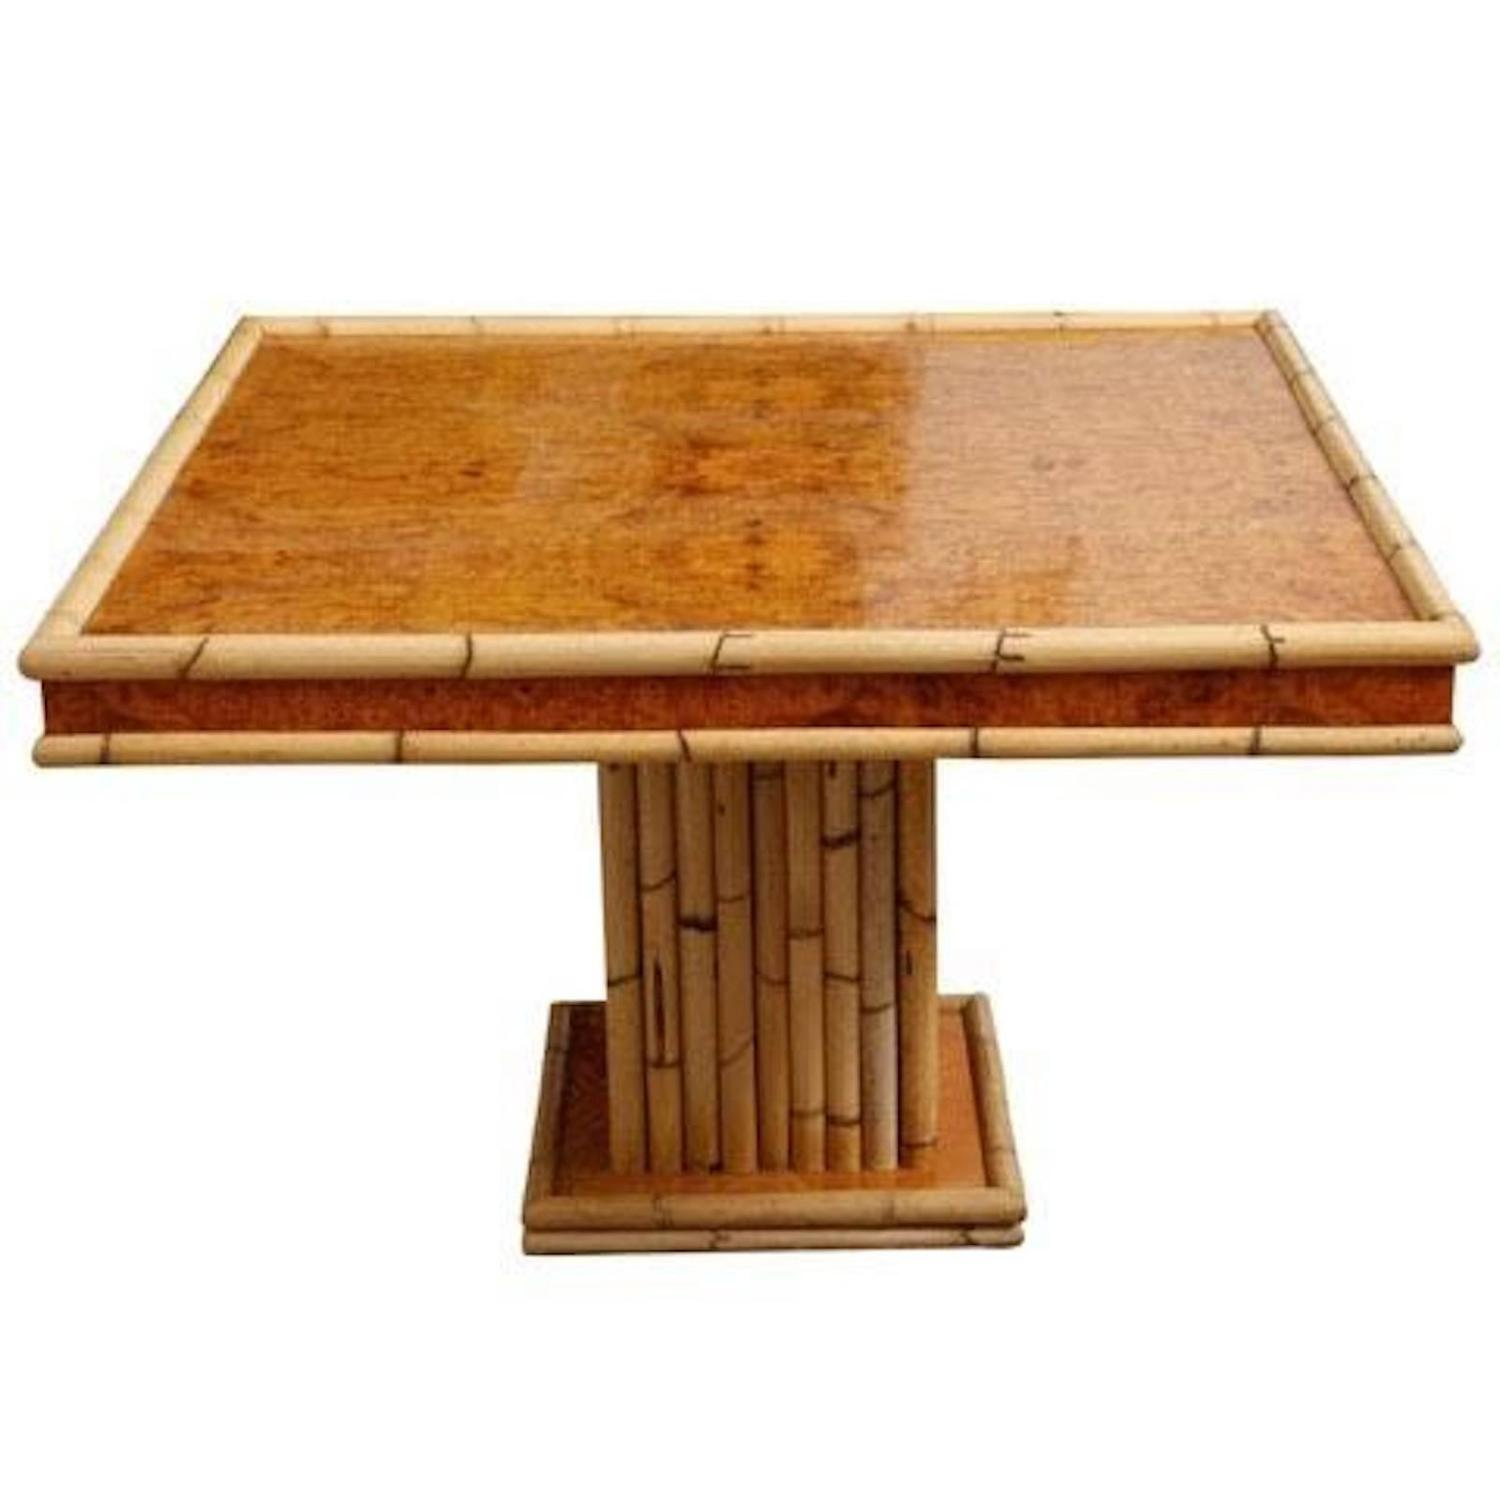 Bamboo Square Table: 1940s Square Bamboo Dining Or Card Table, France For Sale